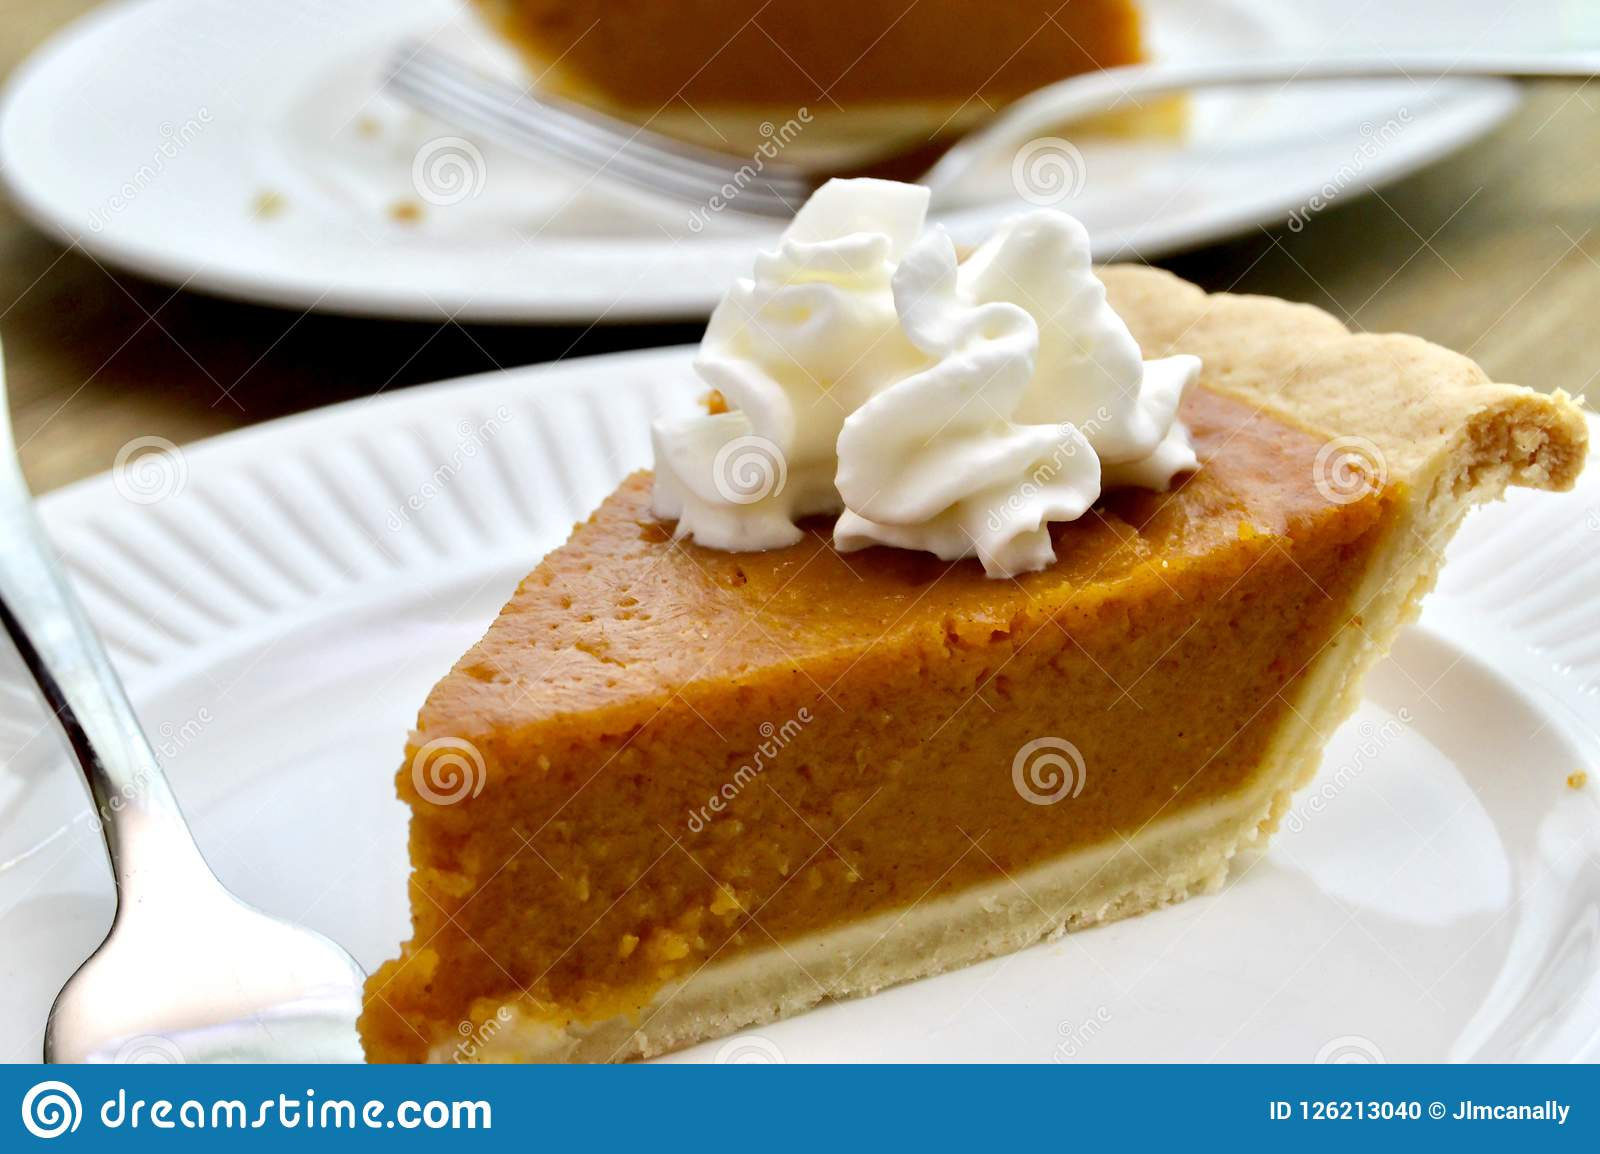 Pumpkin pie on a white plate